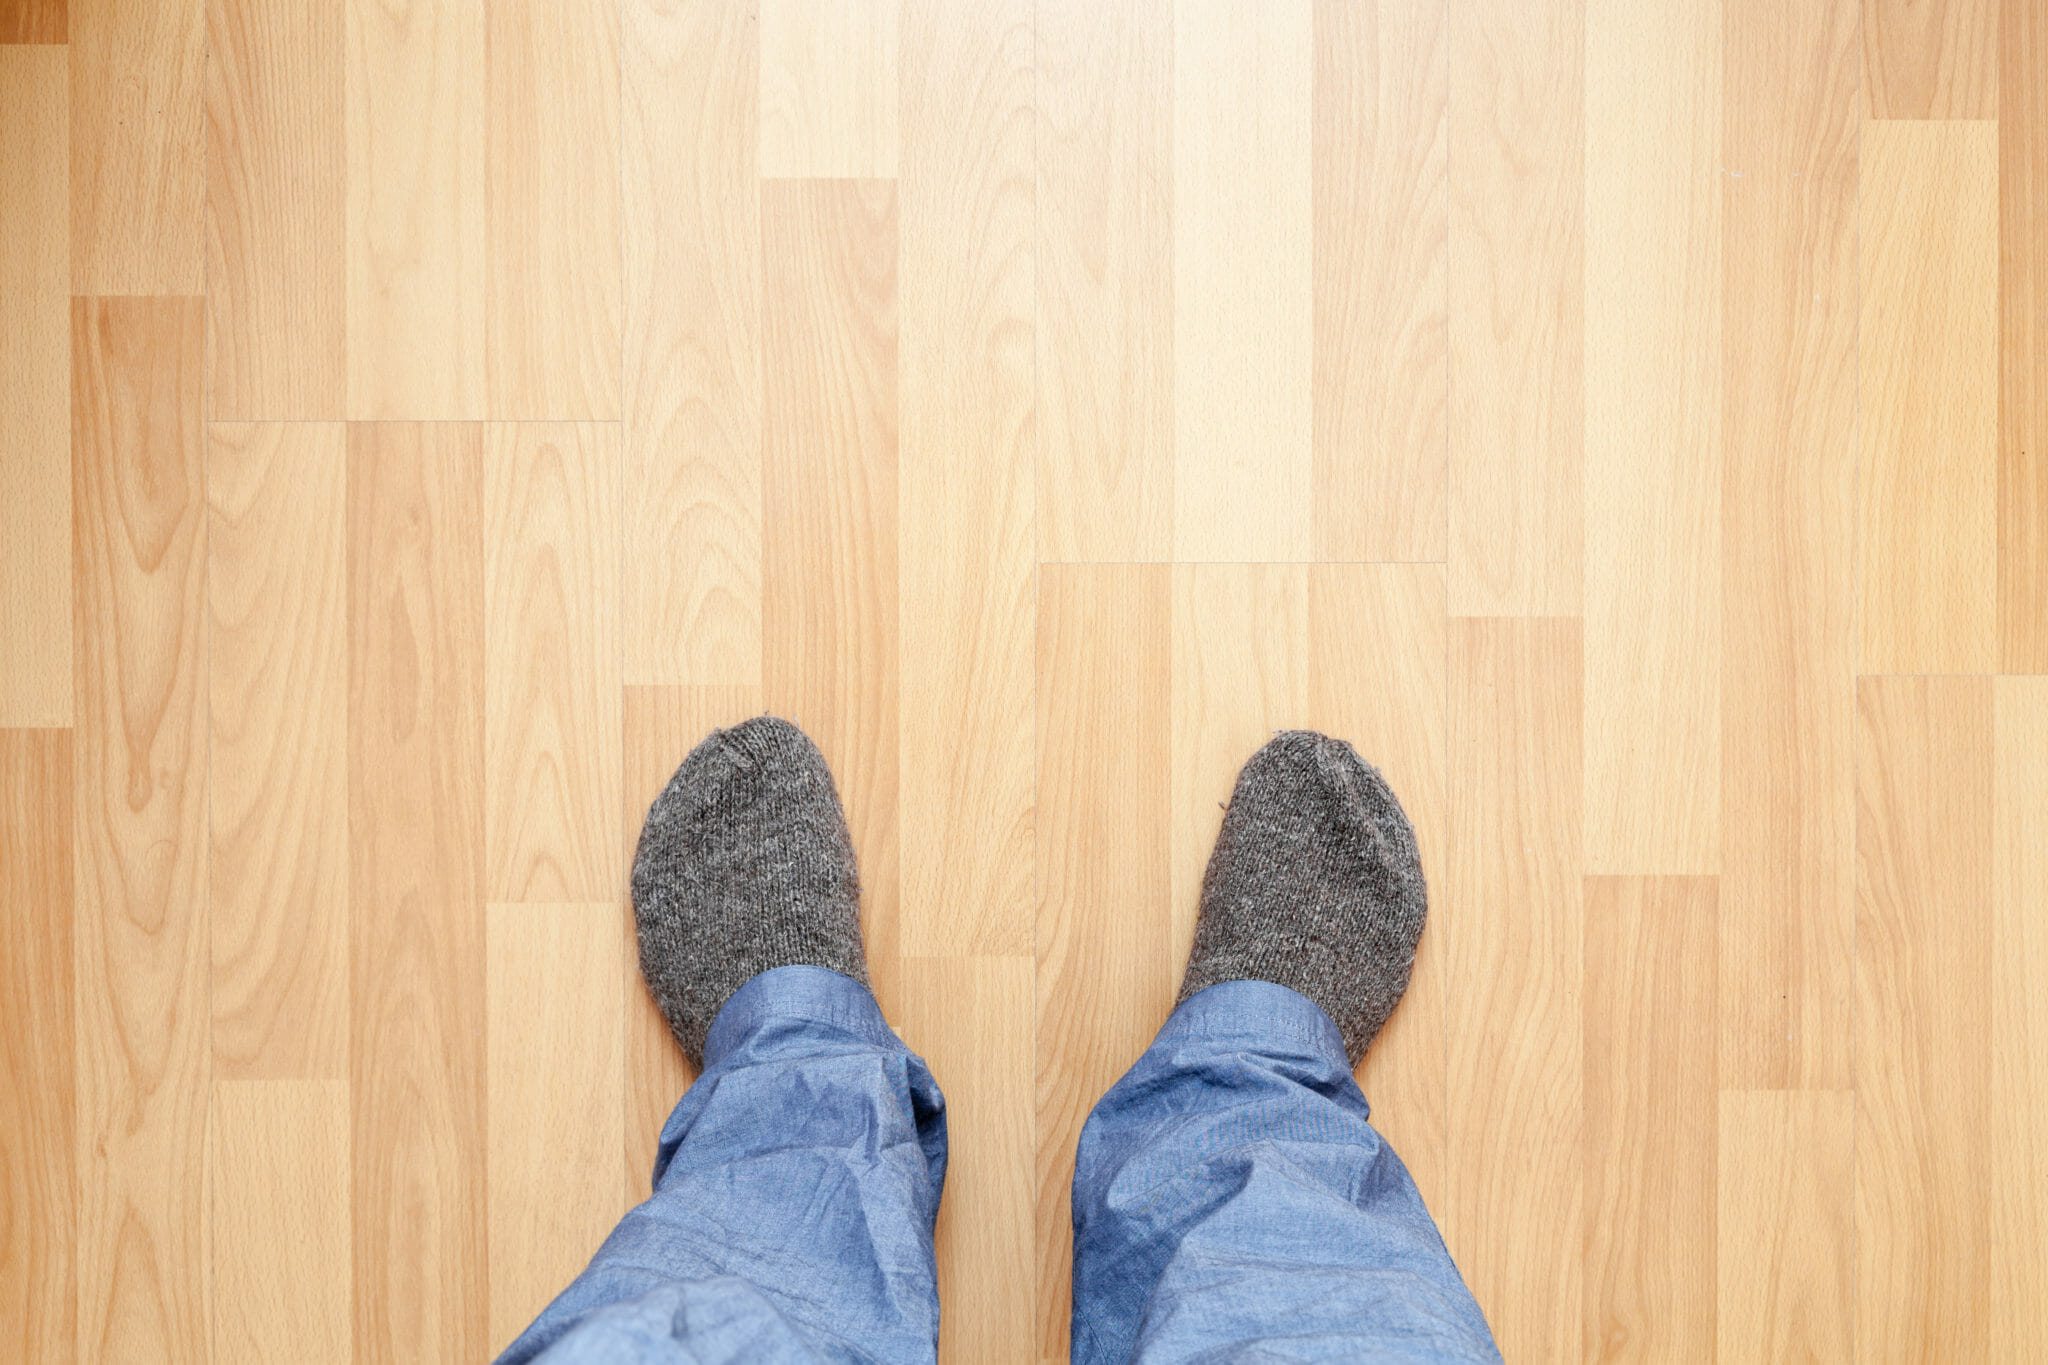 Floor creaking or sloping